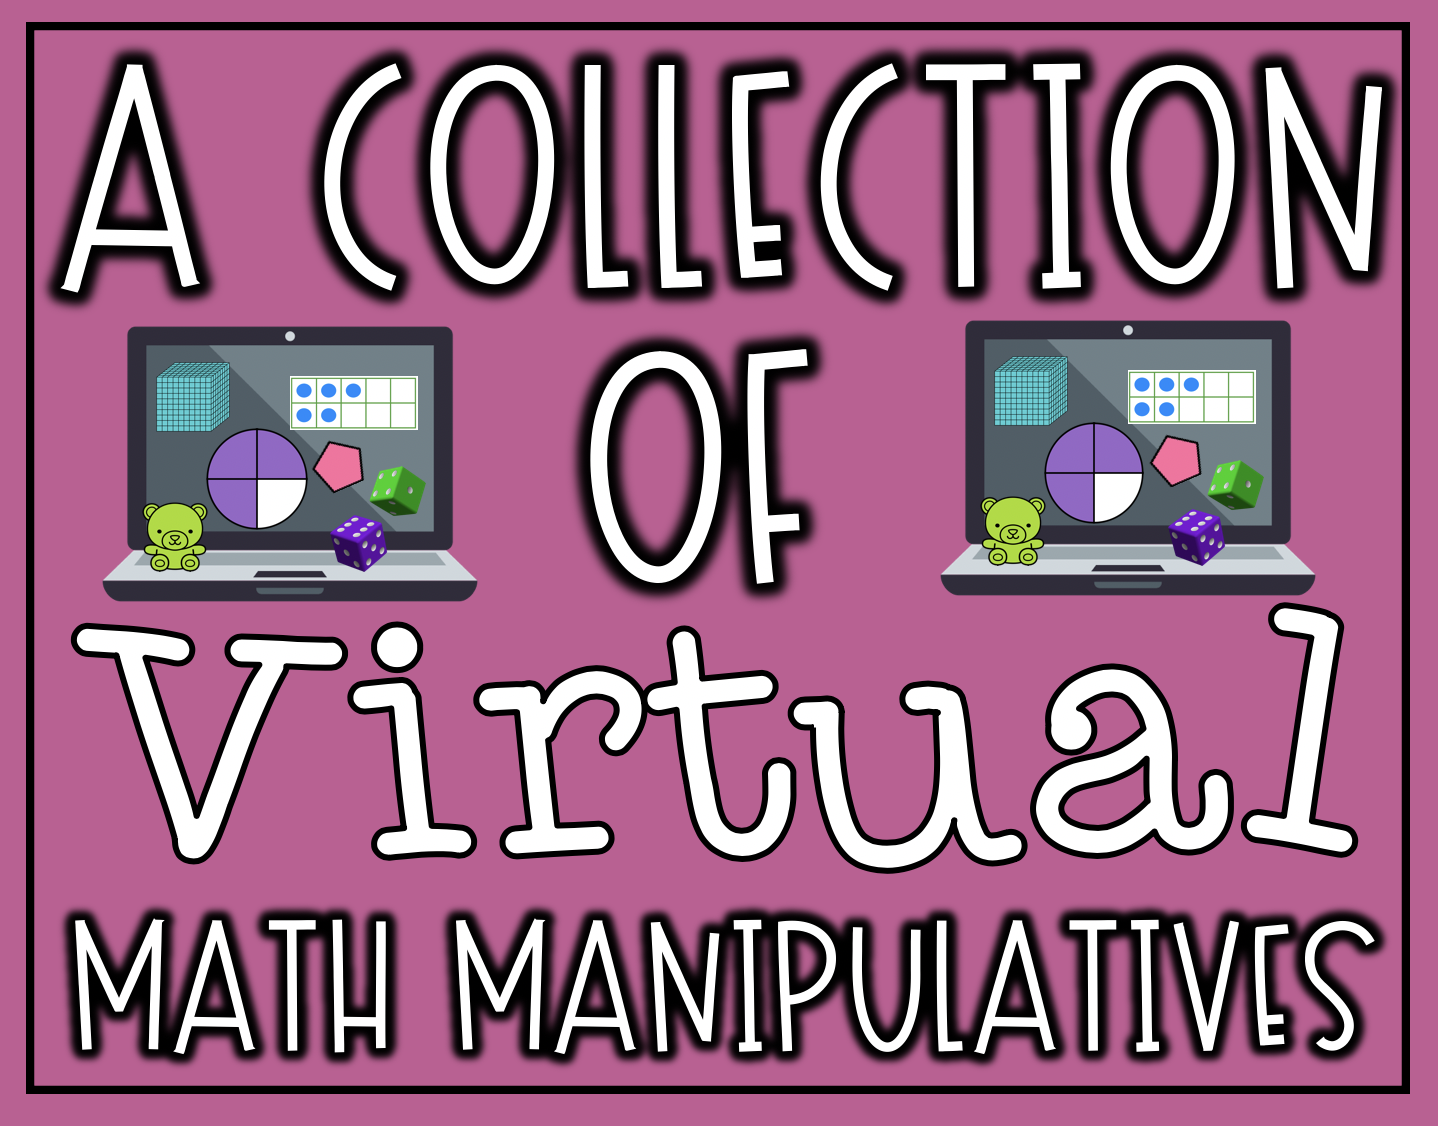 A Collection of Virtual Math Manipulatives | The Techie Teacher®